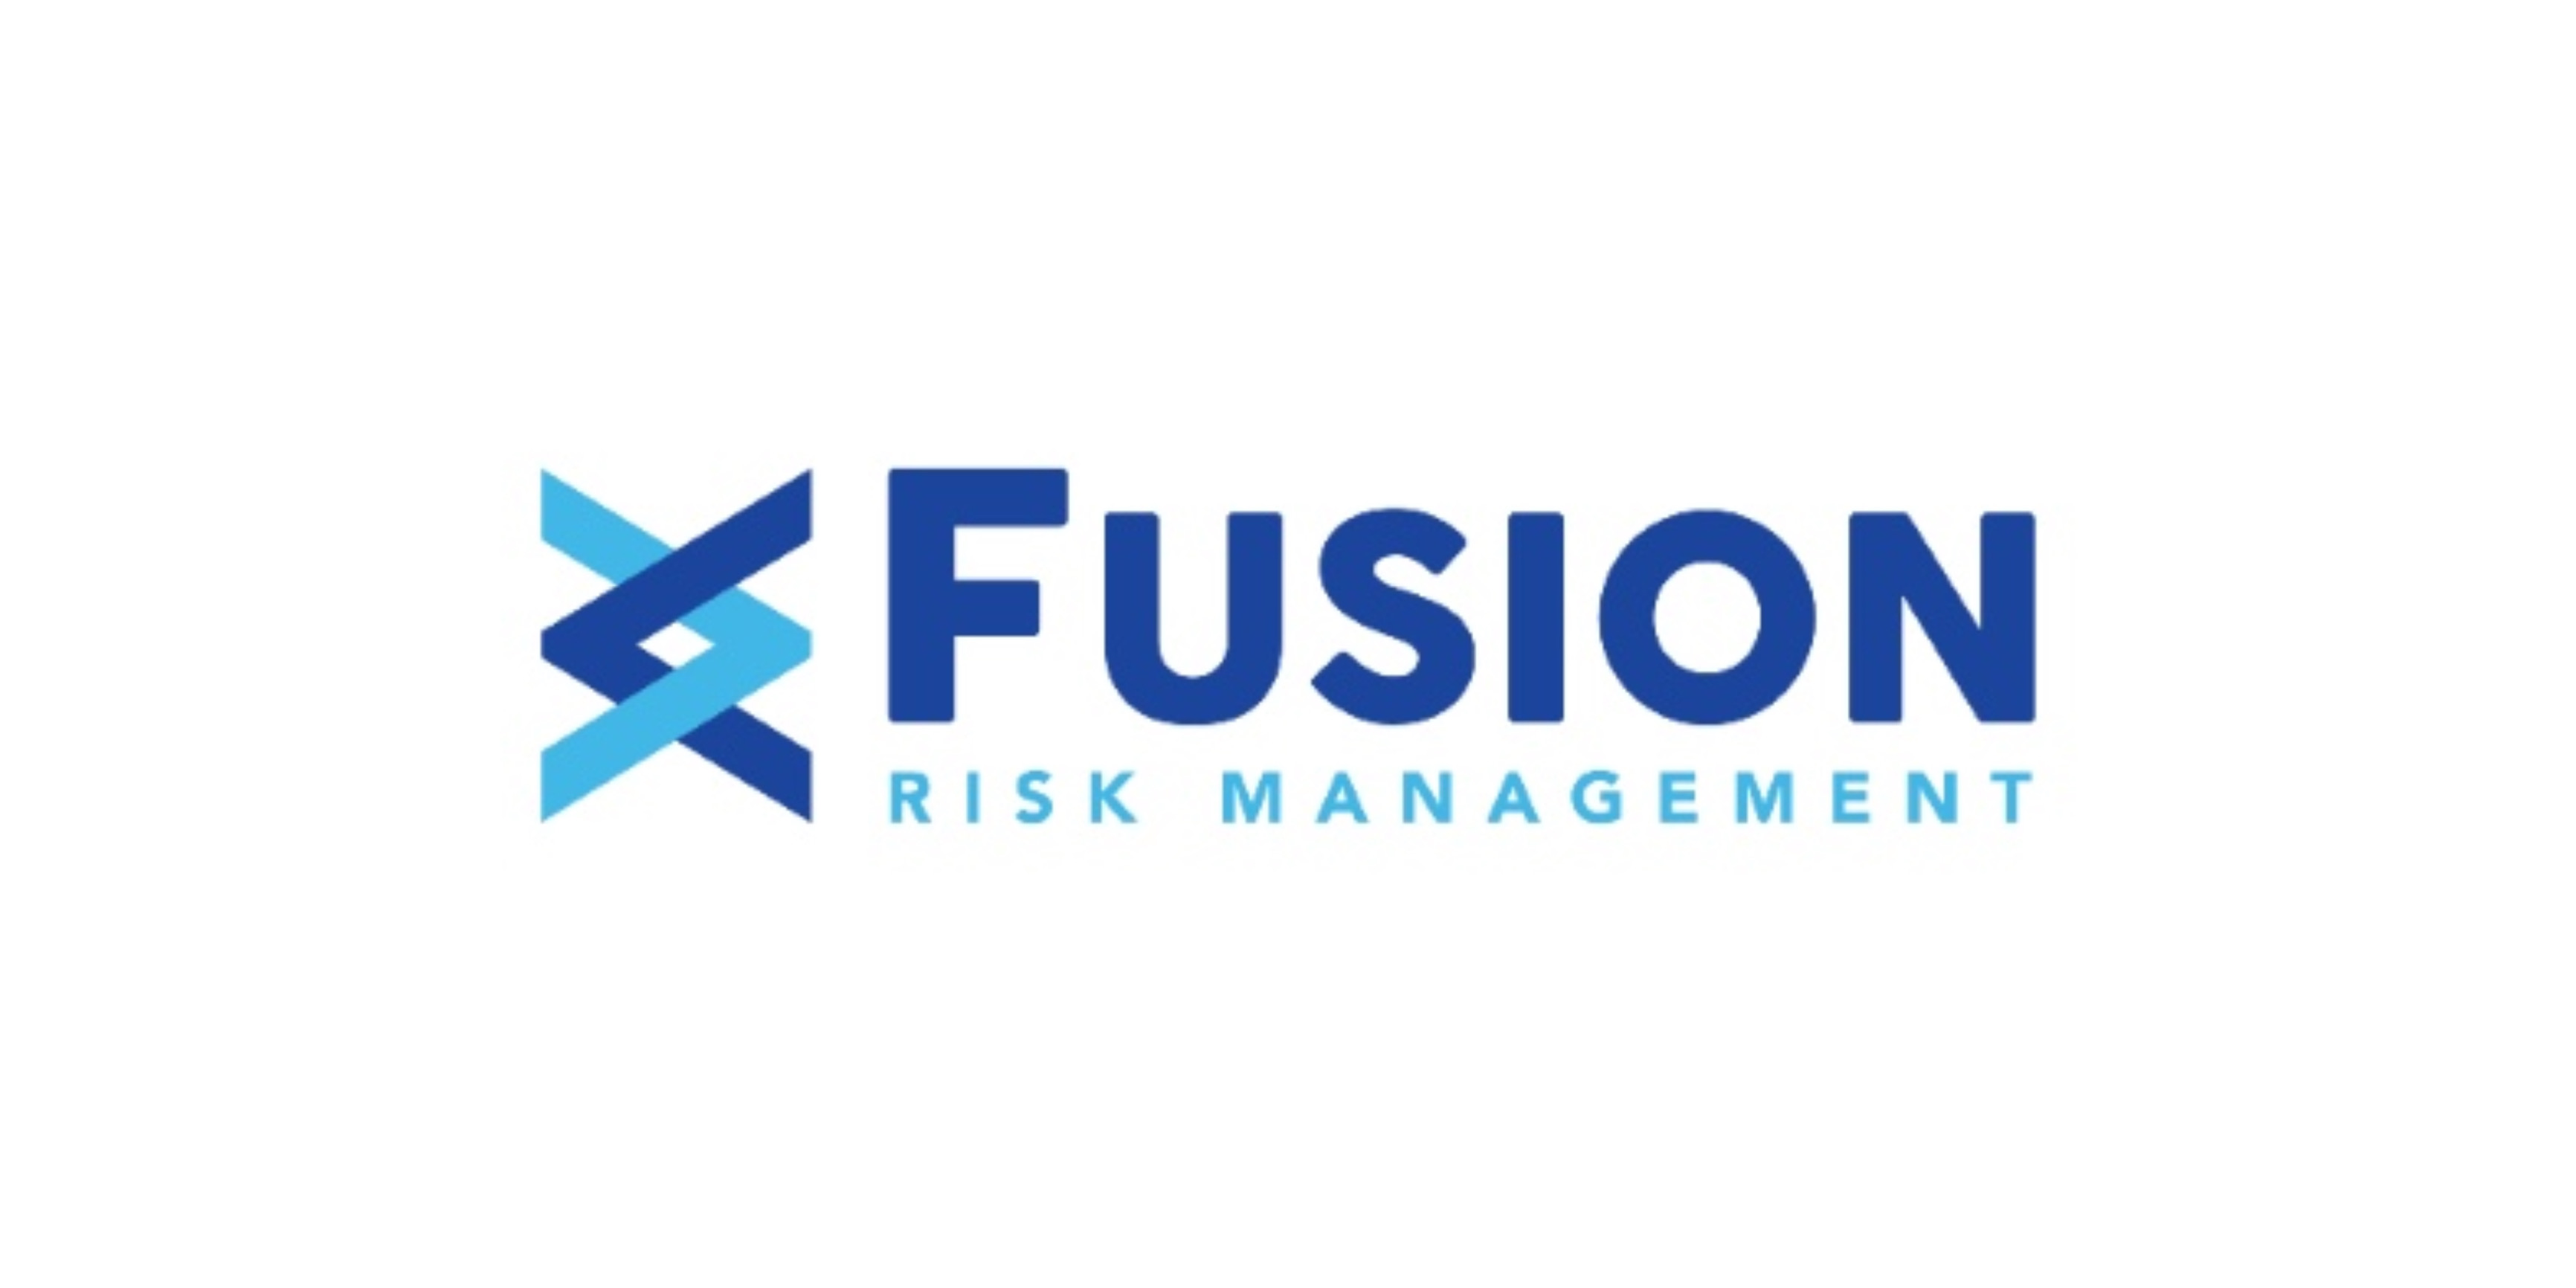 Fusion Risk Management Extends Market Leadership with Global Financial Services, Wins in New Era of Operational Resilience